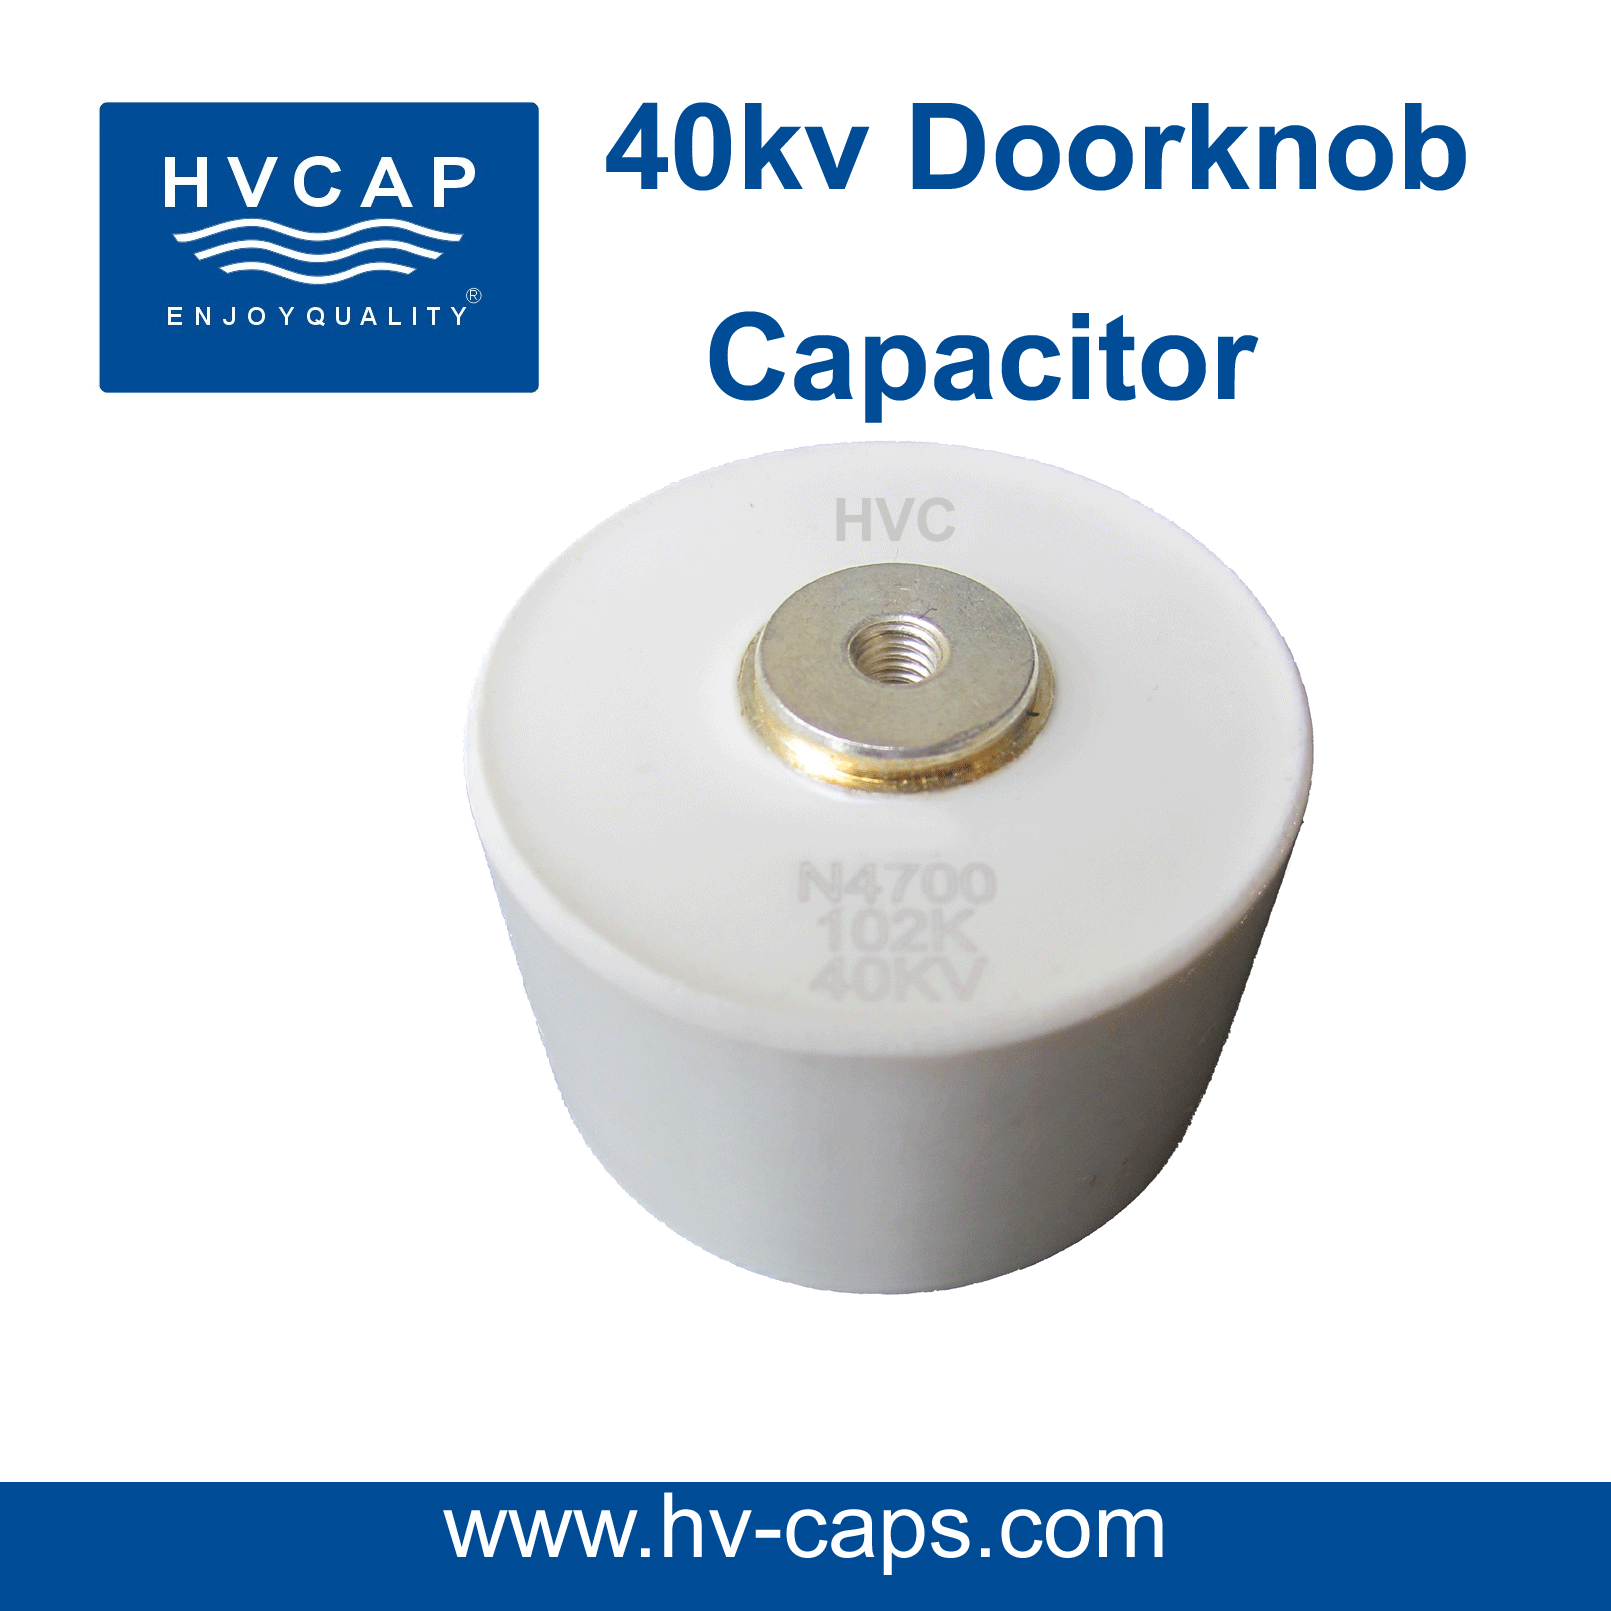 High Voltage Ceramic Doorknob Capacitor 40kv specification.